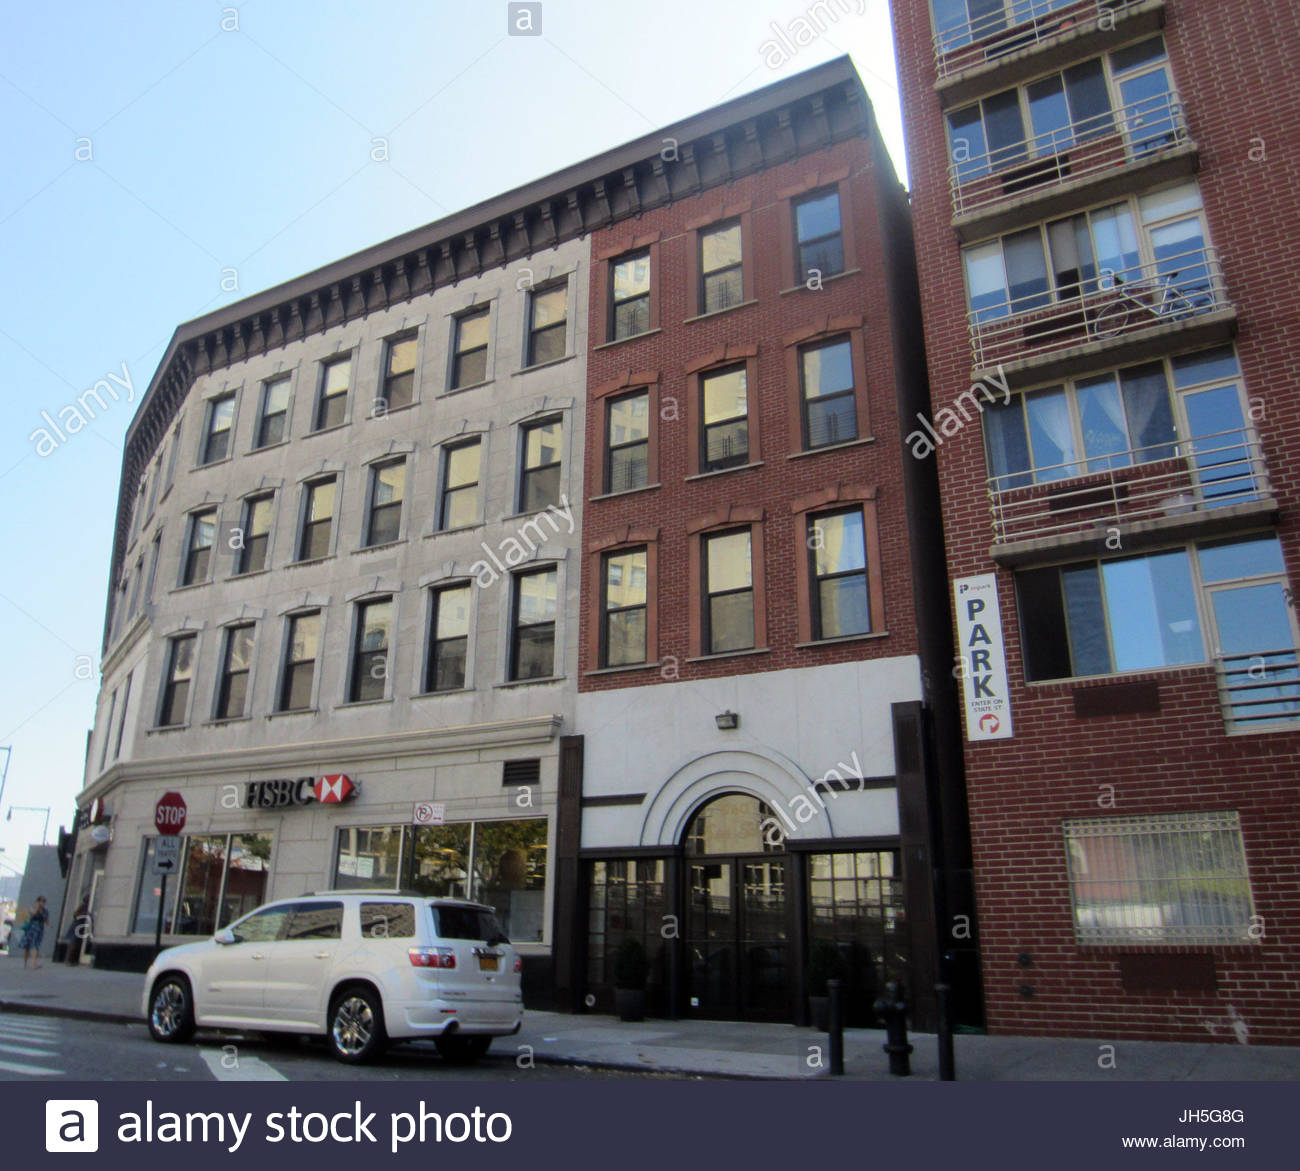 Jay zs old home the brooklyn address that jay z names as his the brooklyn address that jay z names as his stash spot in the blueprint 3 track empire state of mind he raps i used to cop in harlem malvernweather Choice Image